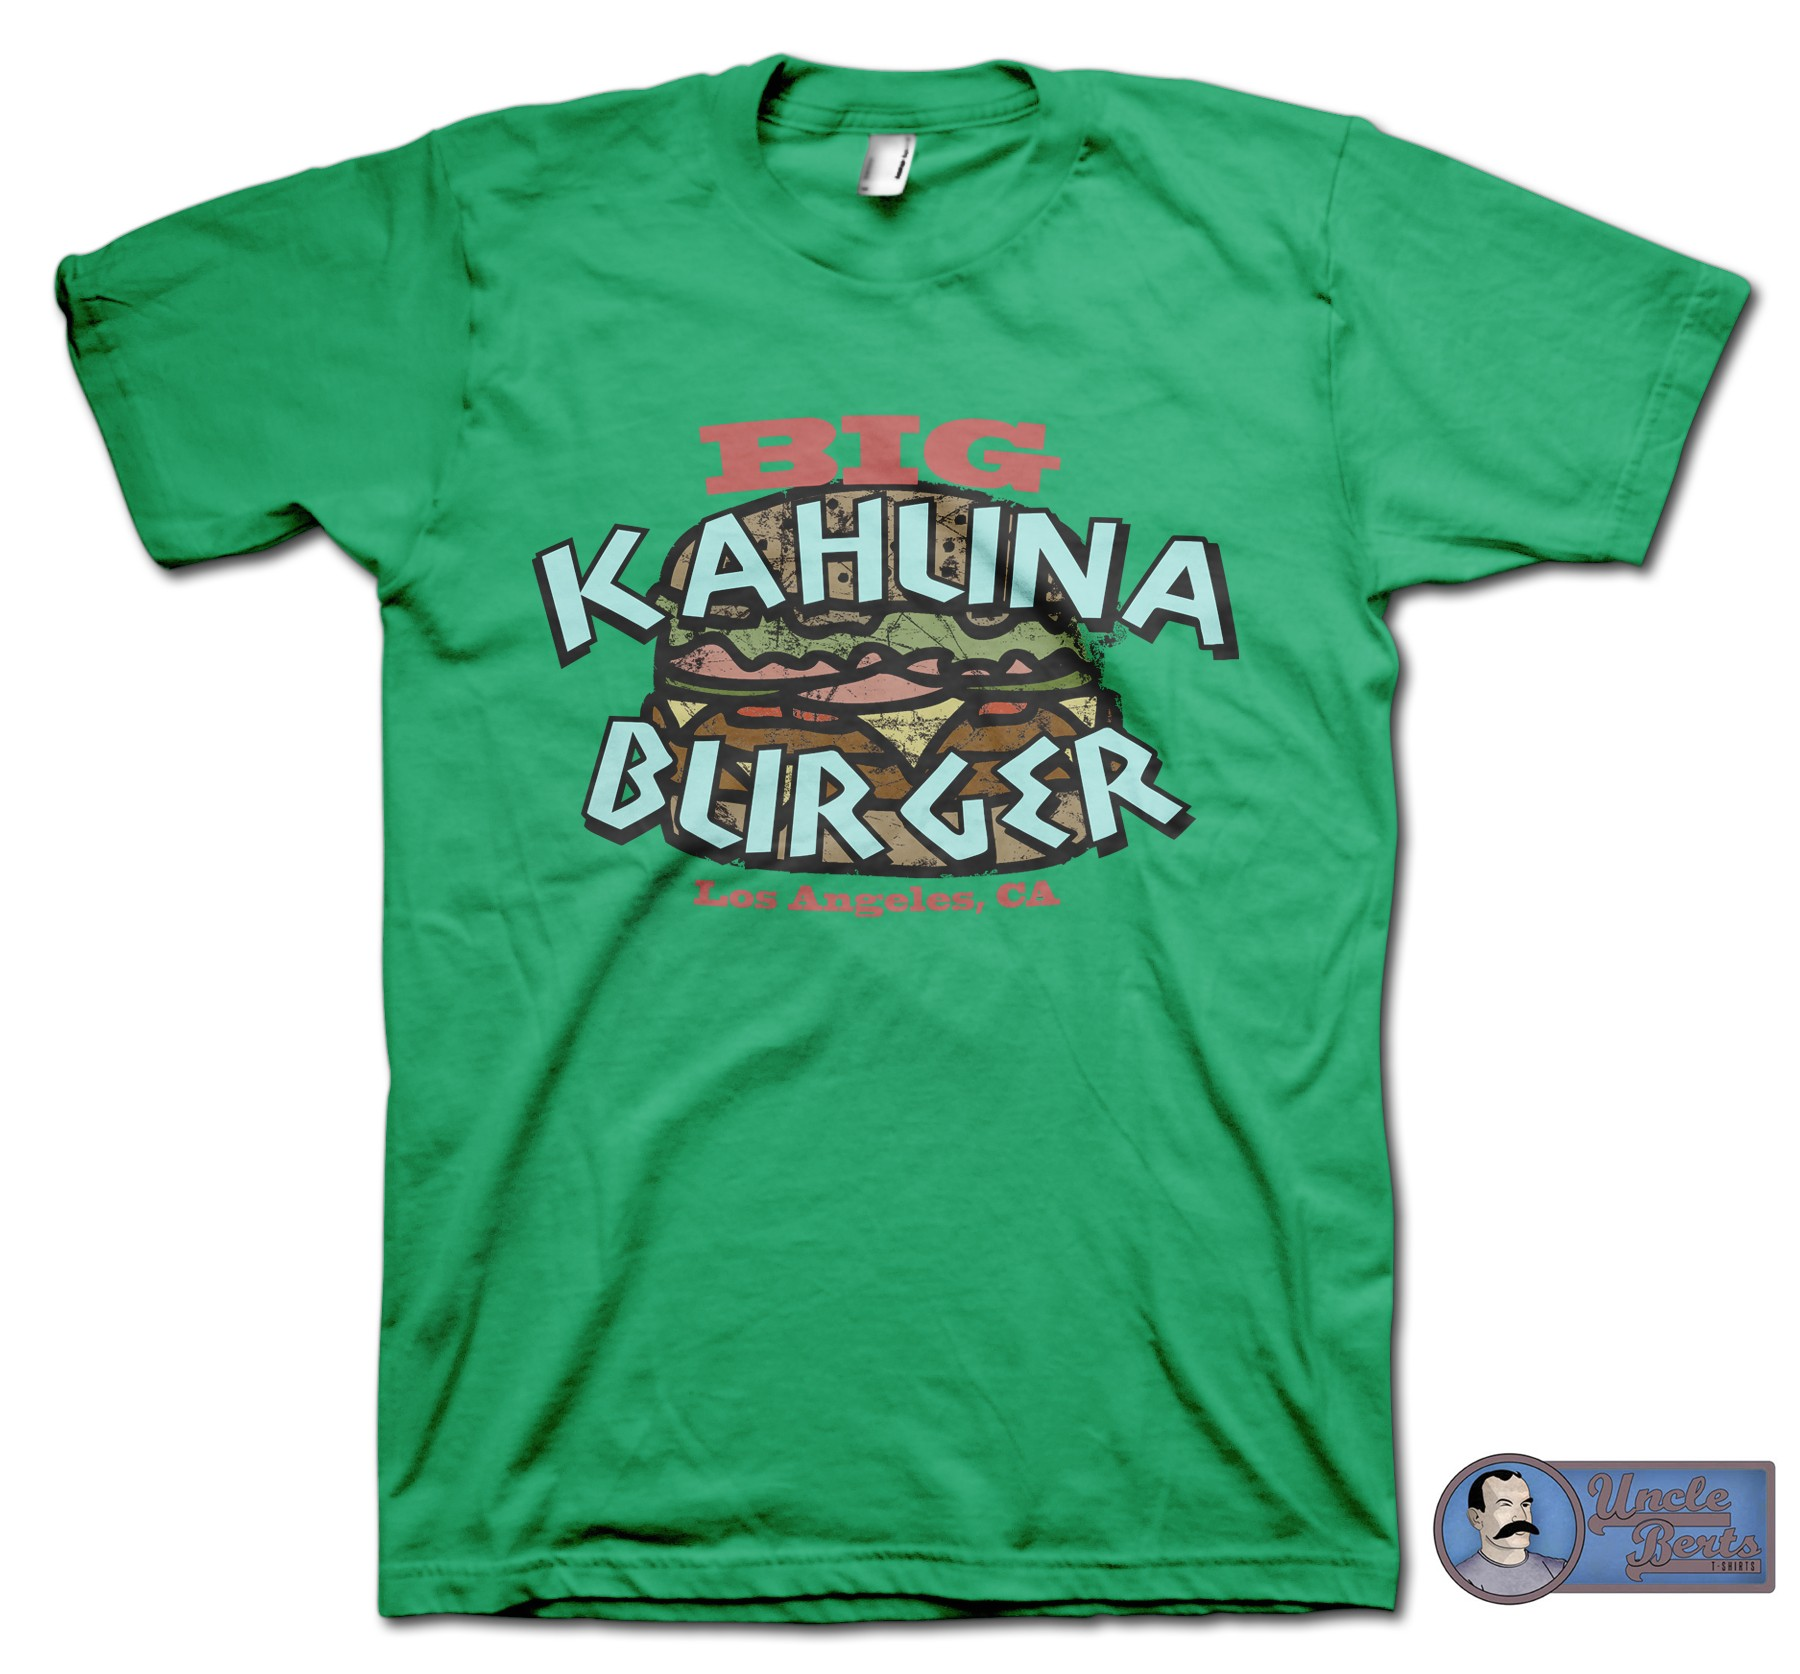 Pulp Fiction (1994) Inspired Big Kahuna Burger T-Shirt